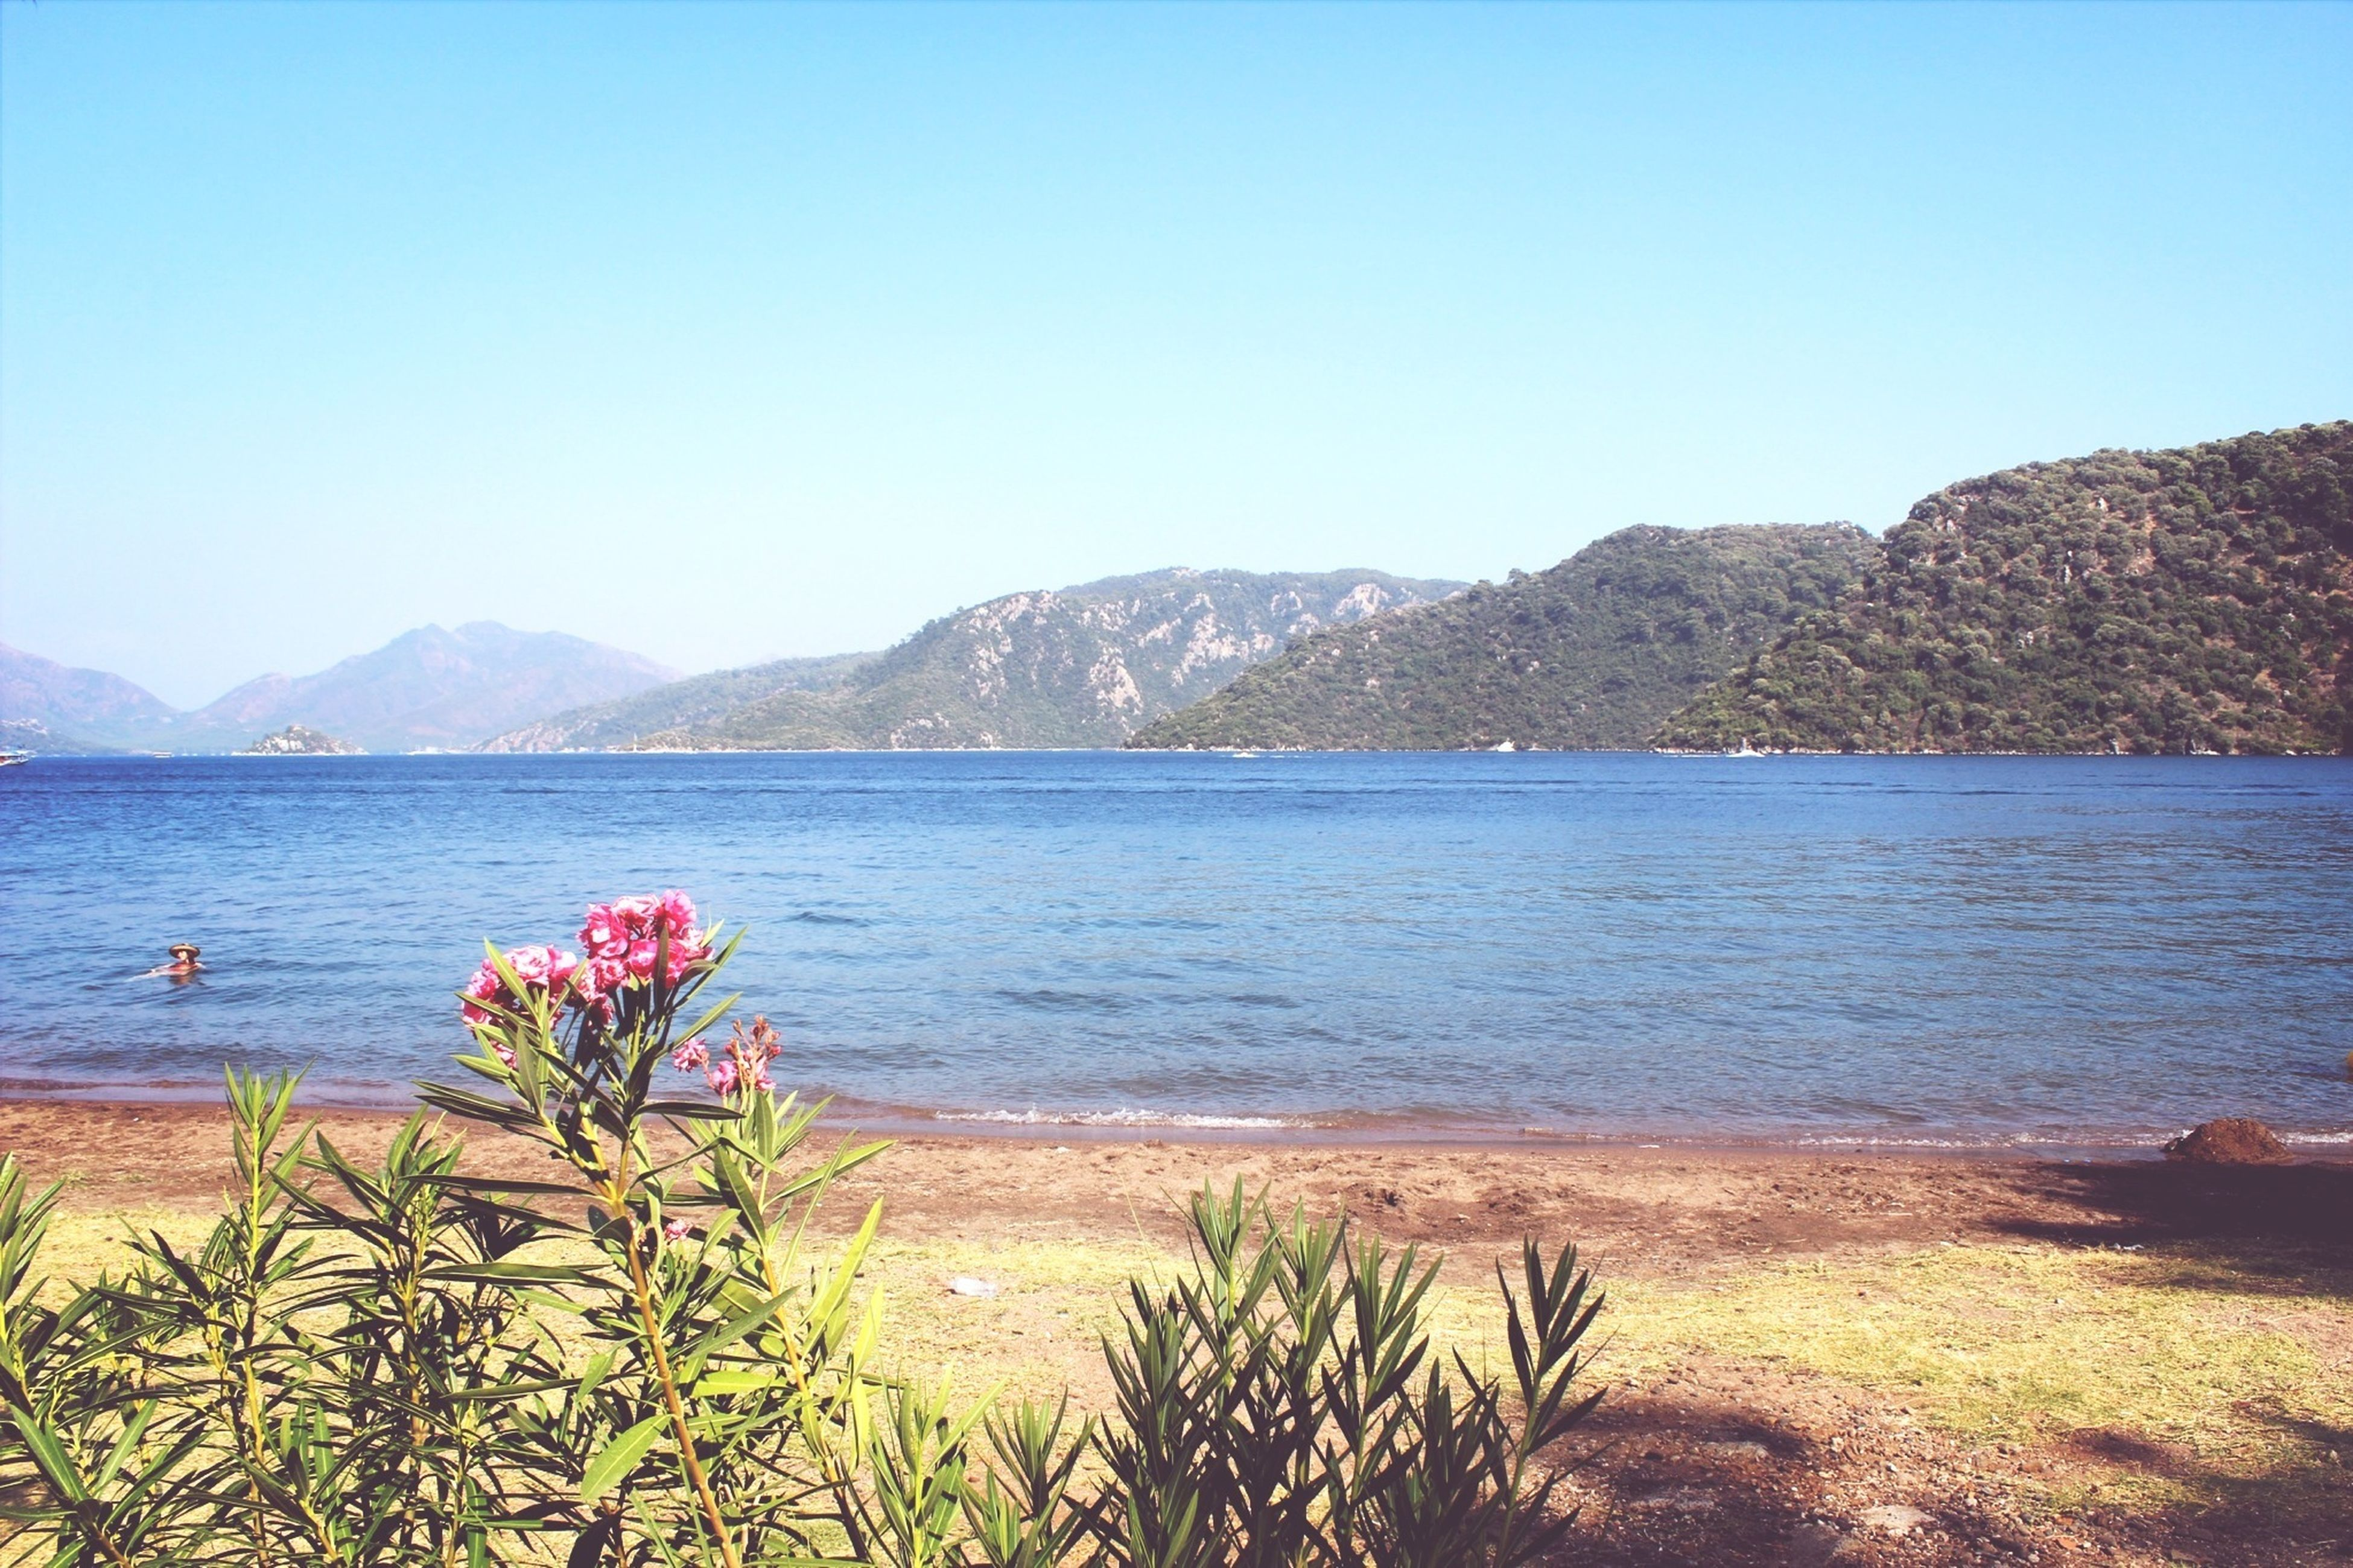 mountain, clear sky, water, beauty in nature, blue, mountain range, tranquil scene, tranquility, scenics, flower, copy space, nature, lake, sea, plant, idyllic, growth, day, beach, outdoors